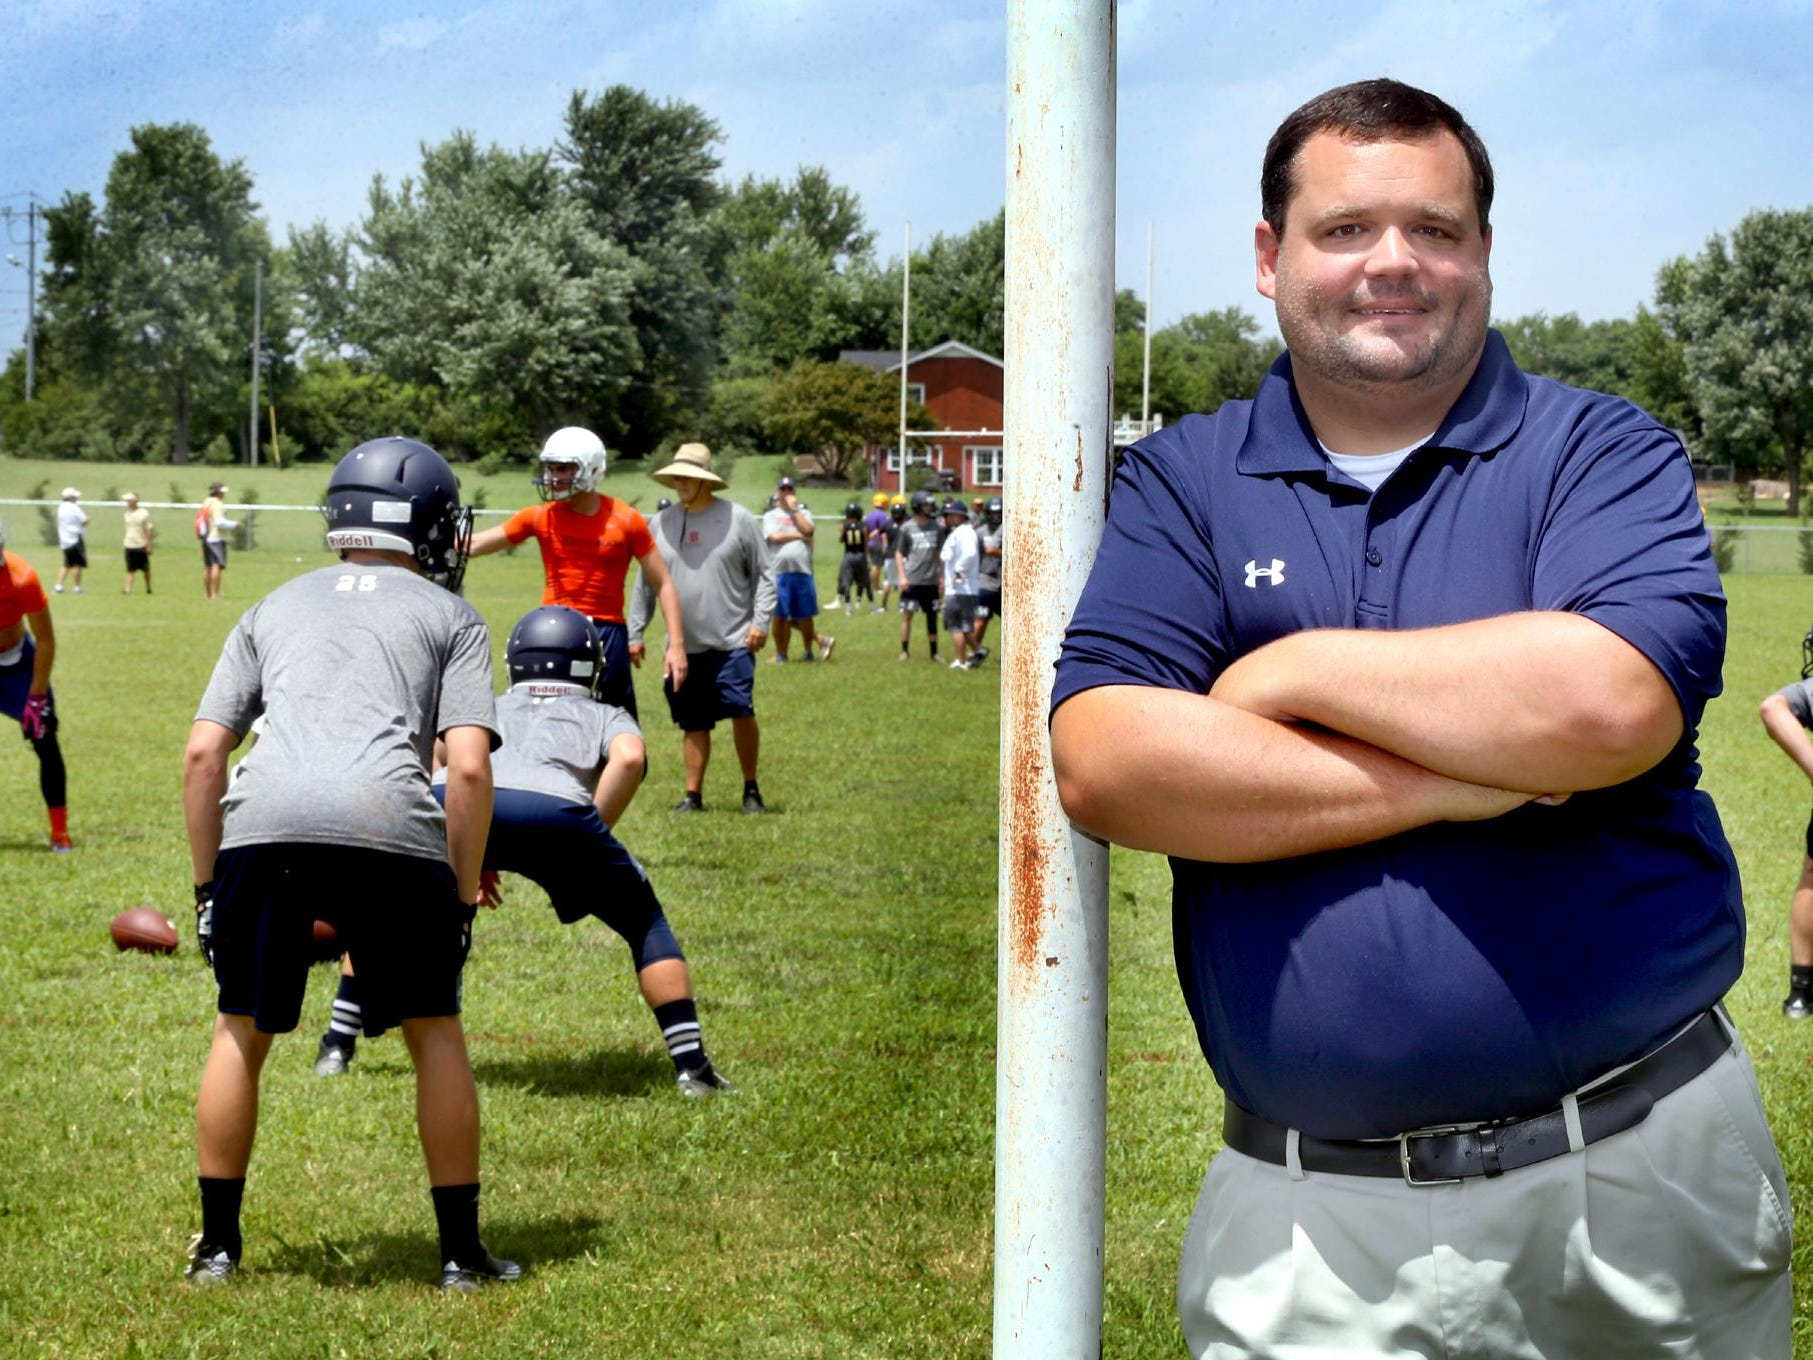 Brad Rohling oversees athletic trainers at high schools in county.